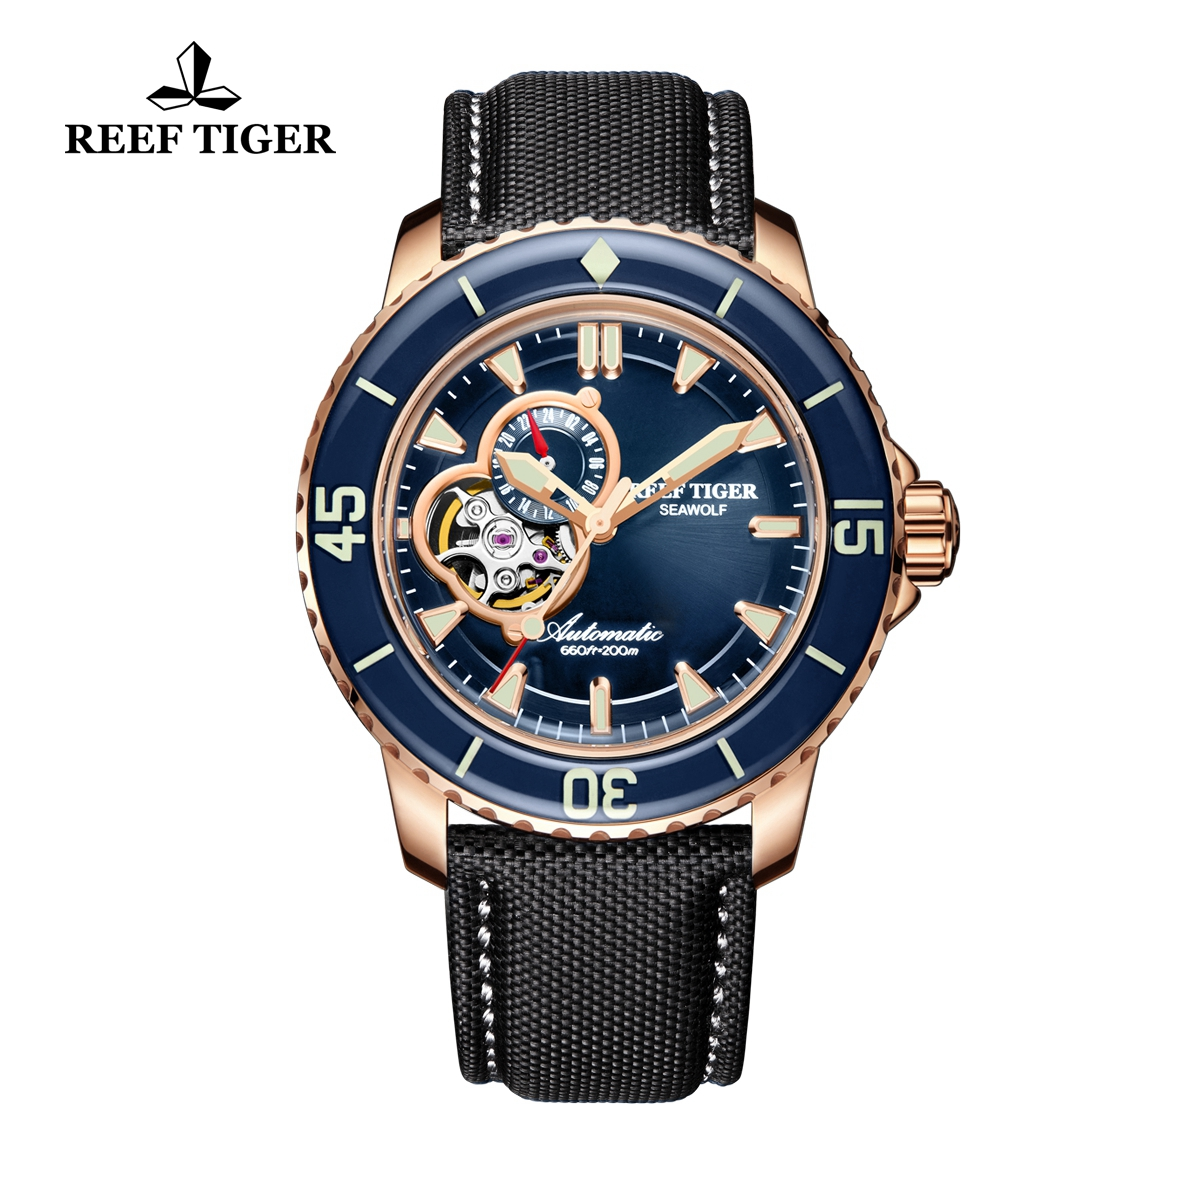 Reef Tiger Sea Wolf Men's Luxury Rose Gold Blue Dial Automatic Watch Black Nylon Strap Watches RGA3039-PLB